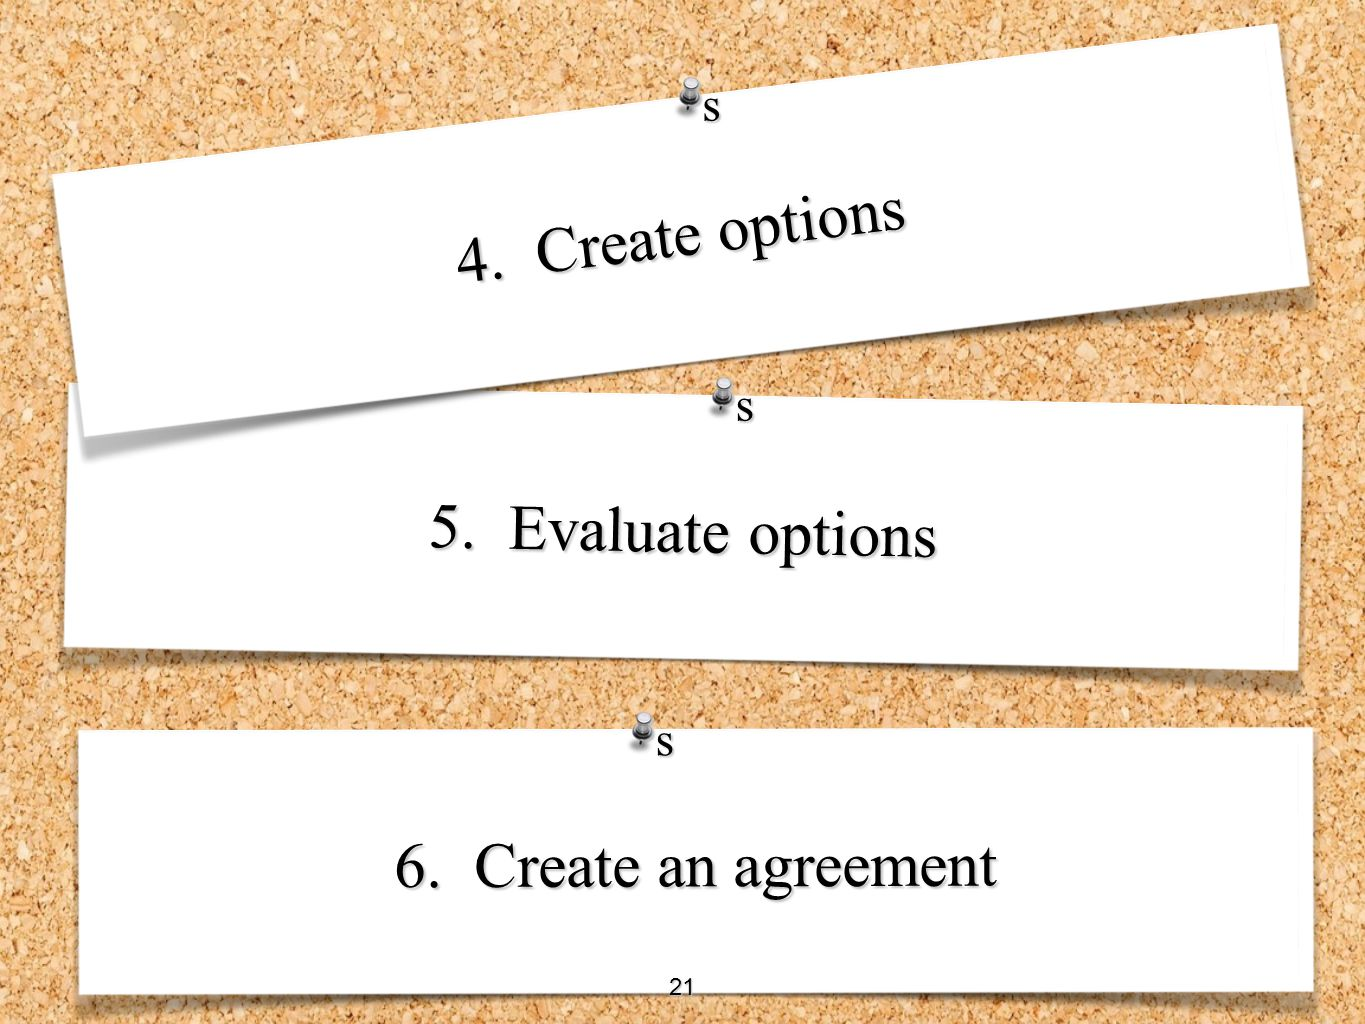 s 4. Create options s 5. Evaluate options s 6. Create an agreement 21